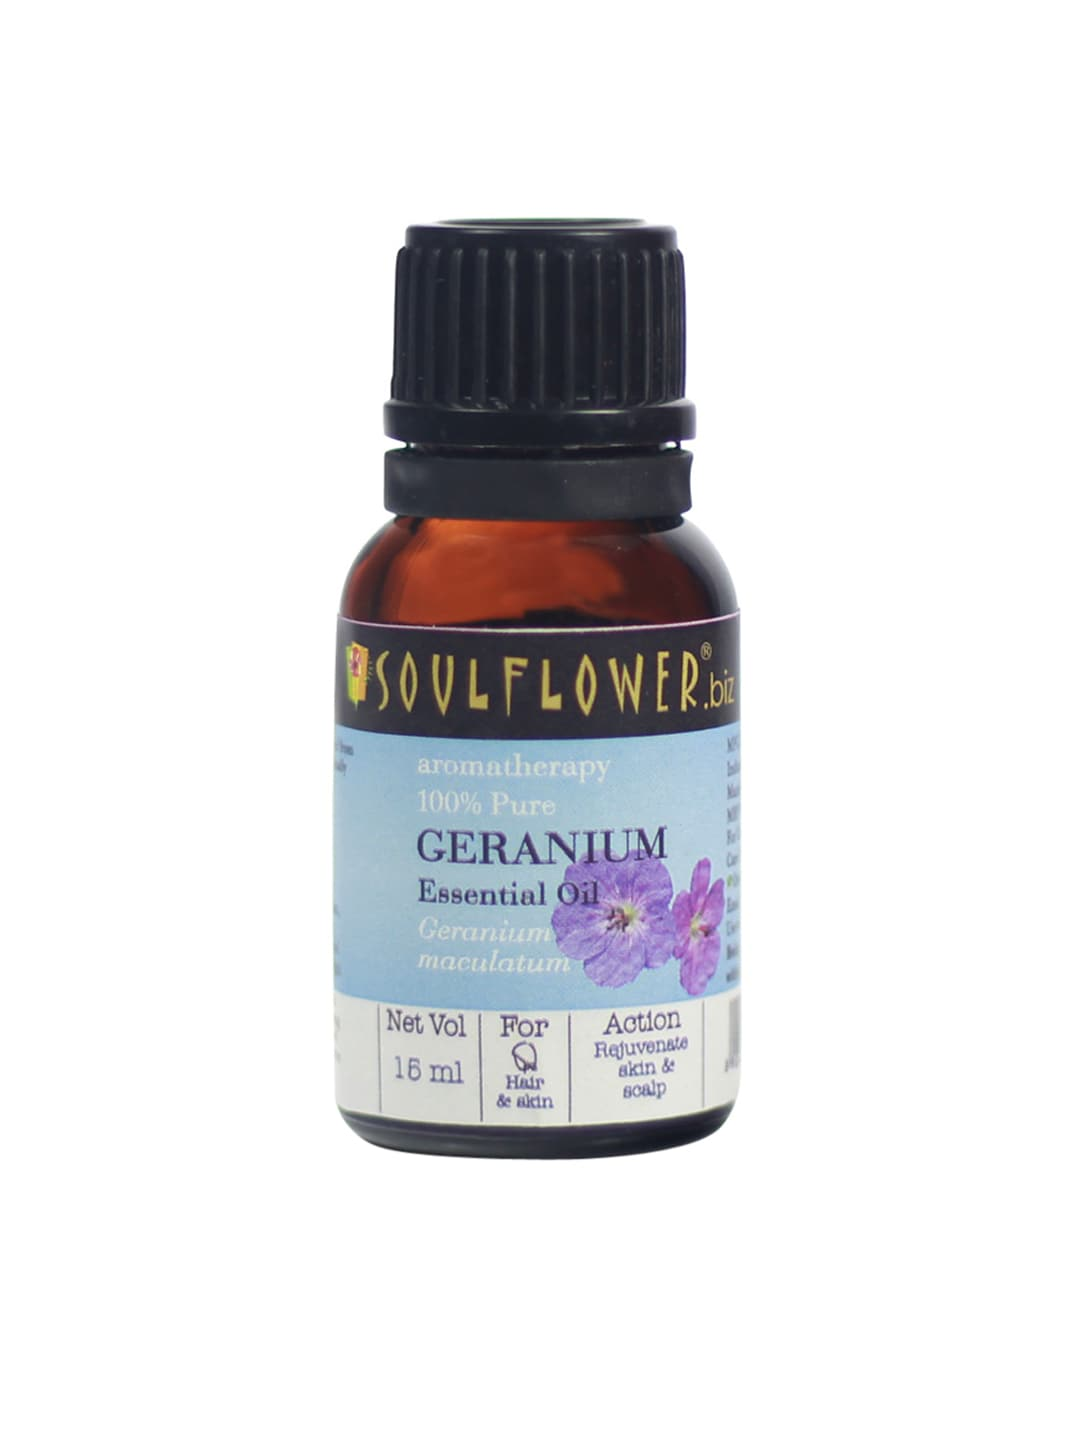 Soulflower Unisex Geranium Essential Oil image